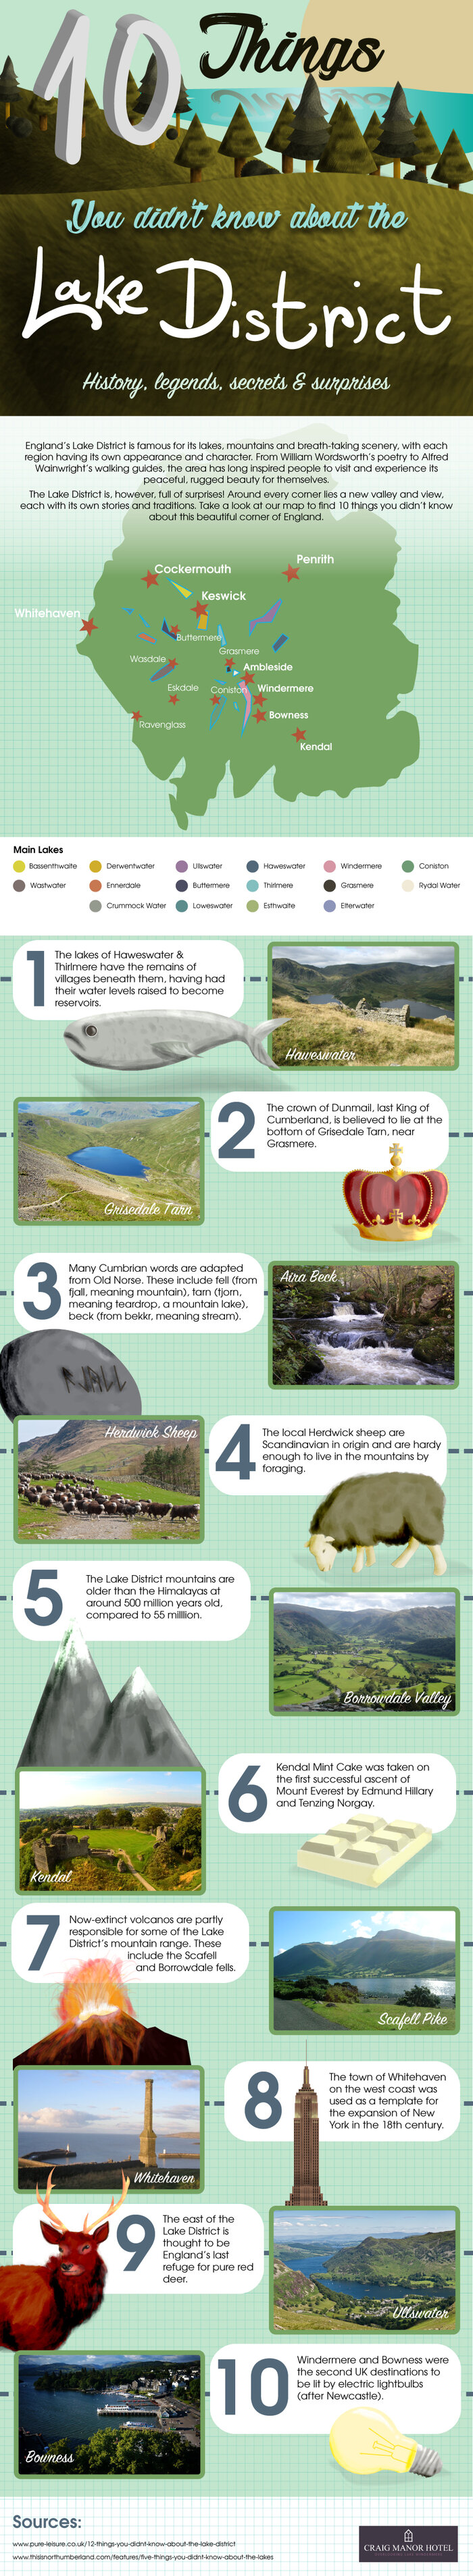 lake district infographic